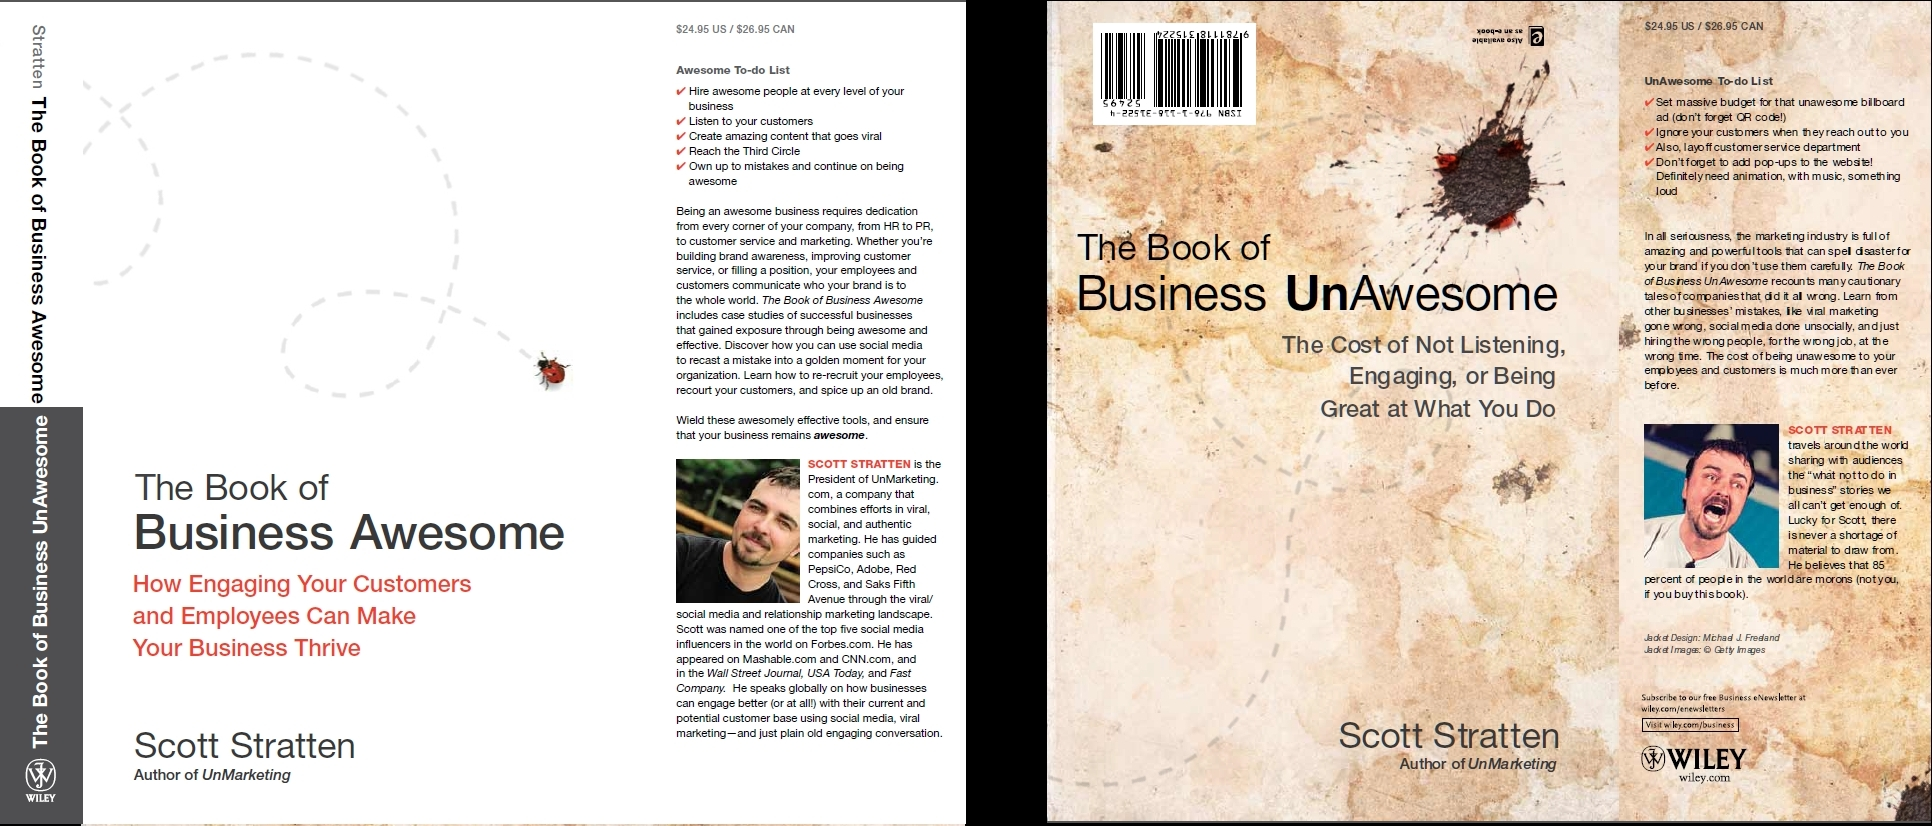 Scott Stratten Business Awesome book